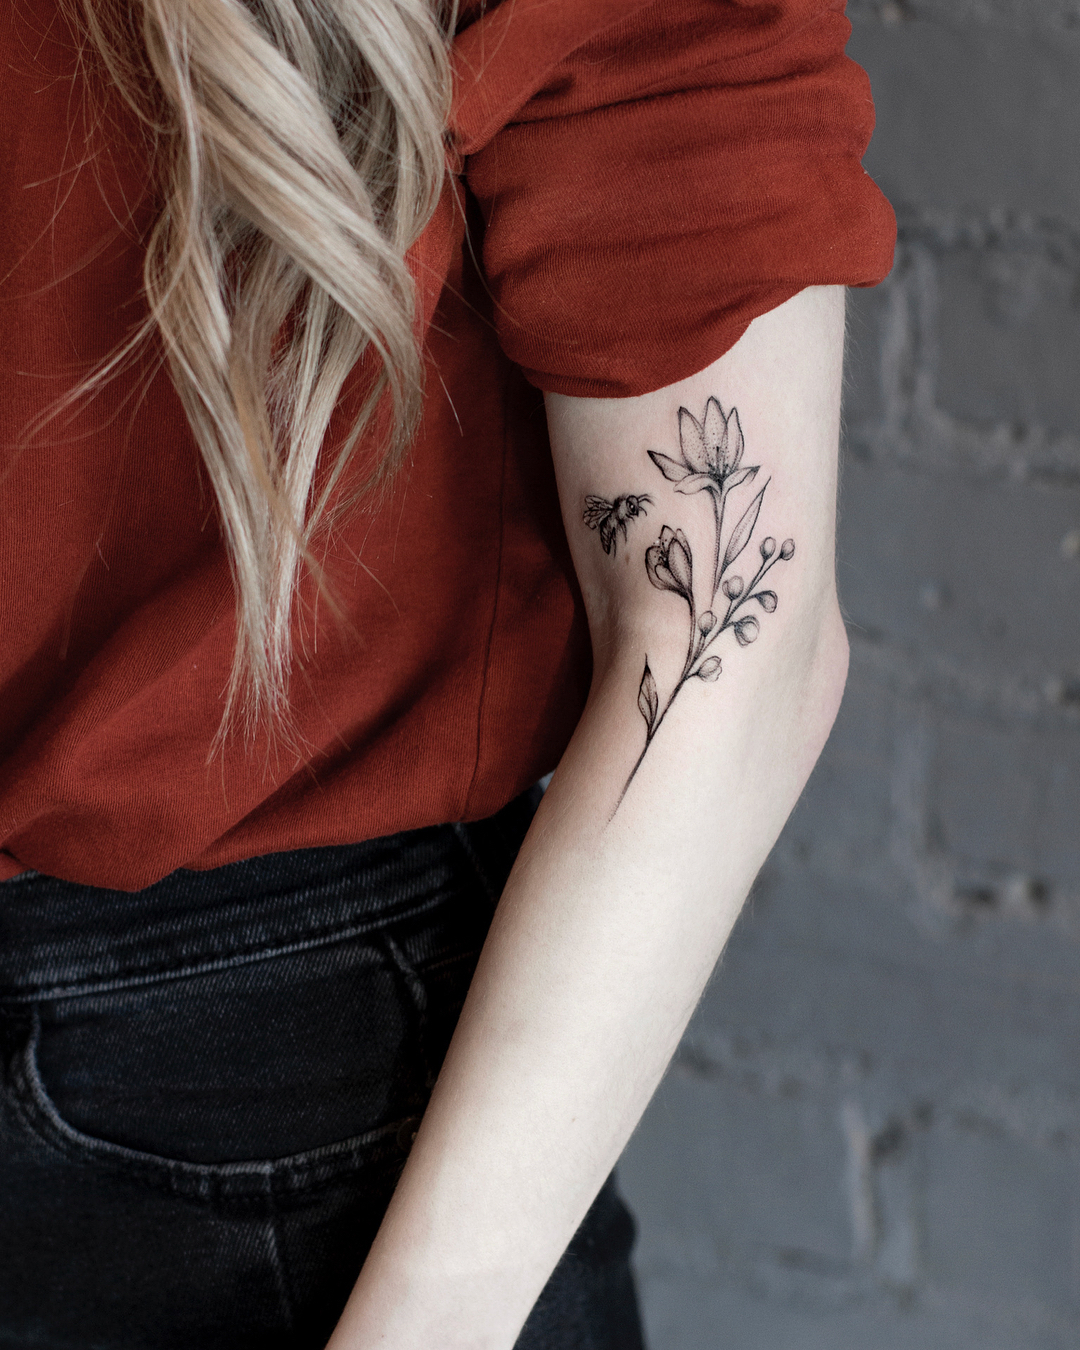 floral arm tattoos design; mini tattoos, simple tattoo, beautiful tattoos, sex tattoos, mini tattoos, meaningful tattoos; chic tattoos